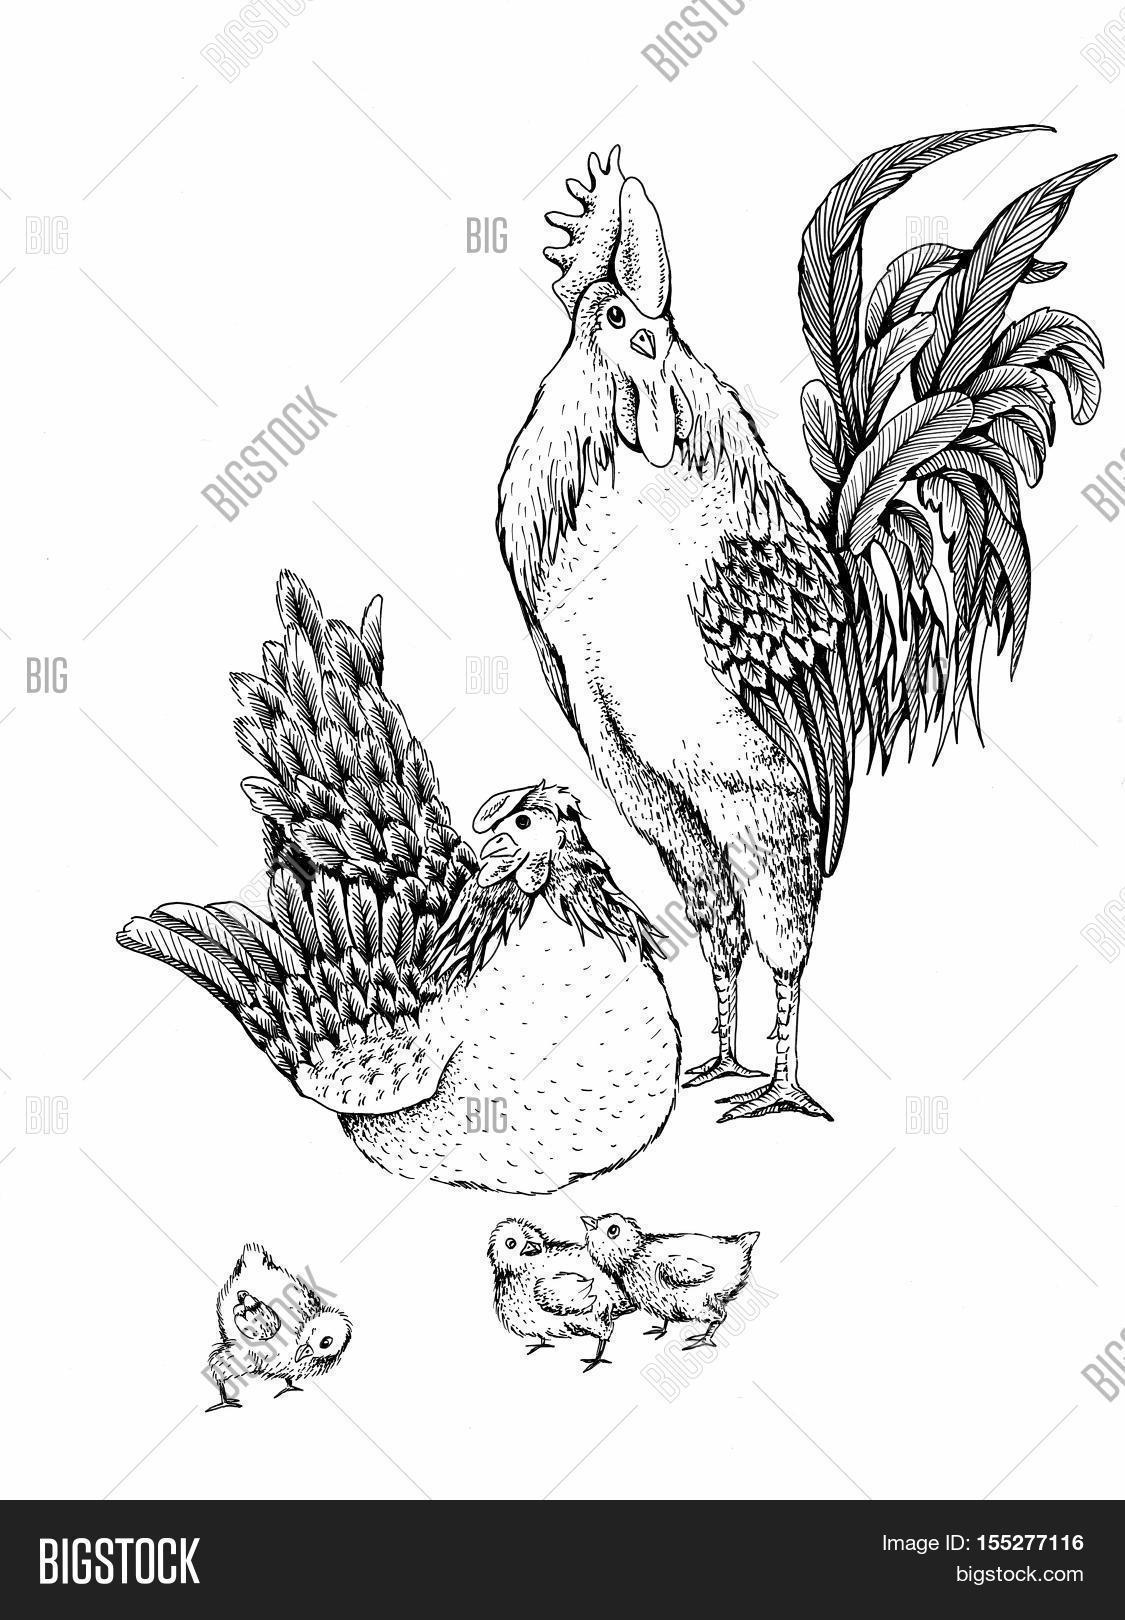 Illustration Rooster Hen Series Image  Photo  Bigstock